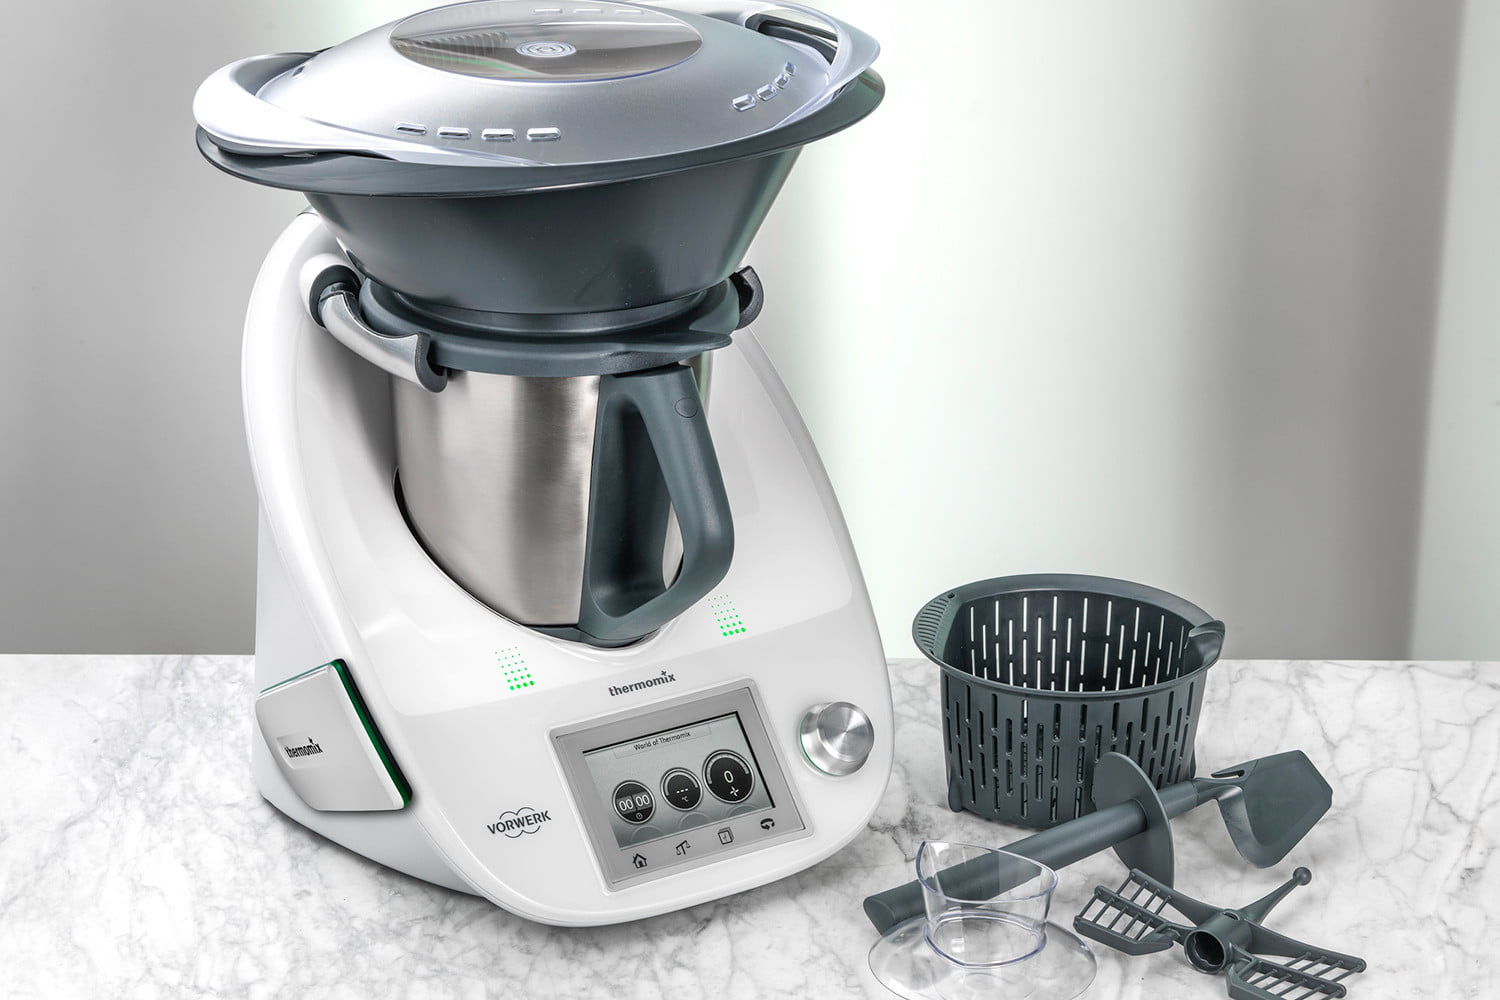 Küchenmaschine Bosch Vs Kitchenaid Showdown Bellini Vs Thermomix Vs All Clad Prep And Cook